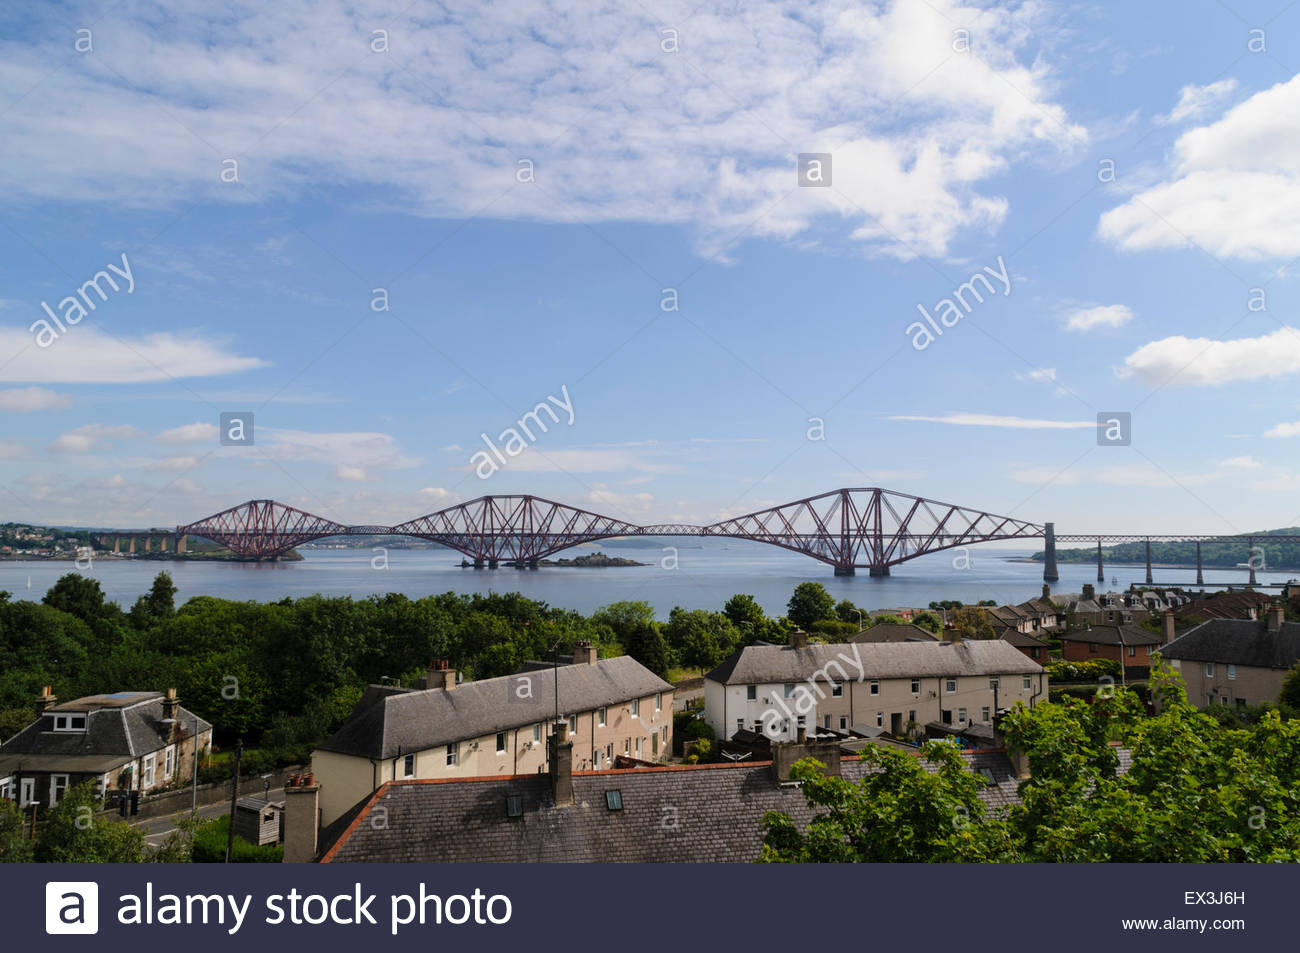 South Queensferry, UK. July 6, 2015. View from the Forth Road Bridge. The Forth Bridge has been confirmed by Unesco - Stock Image